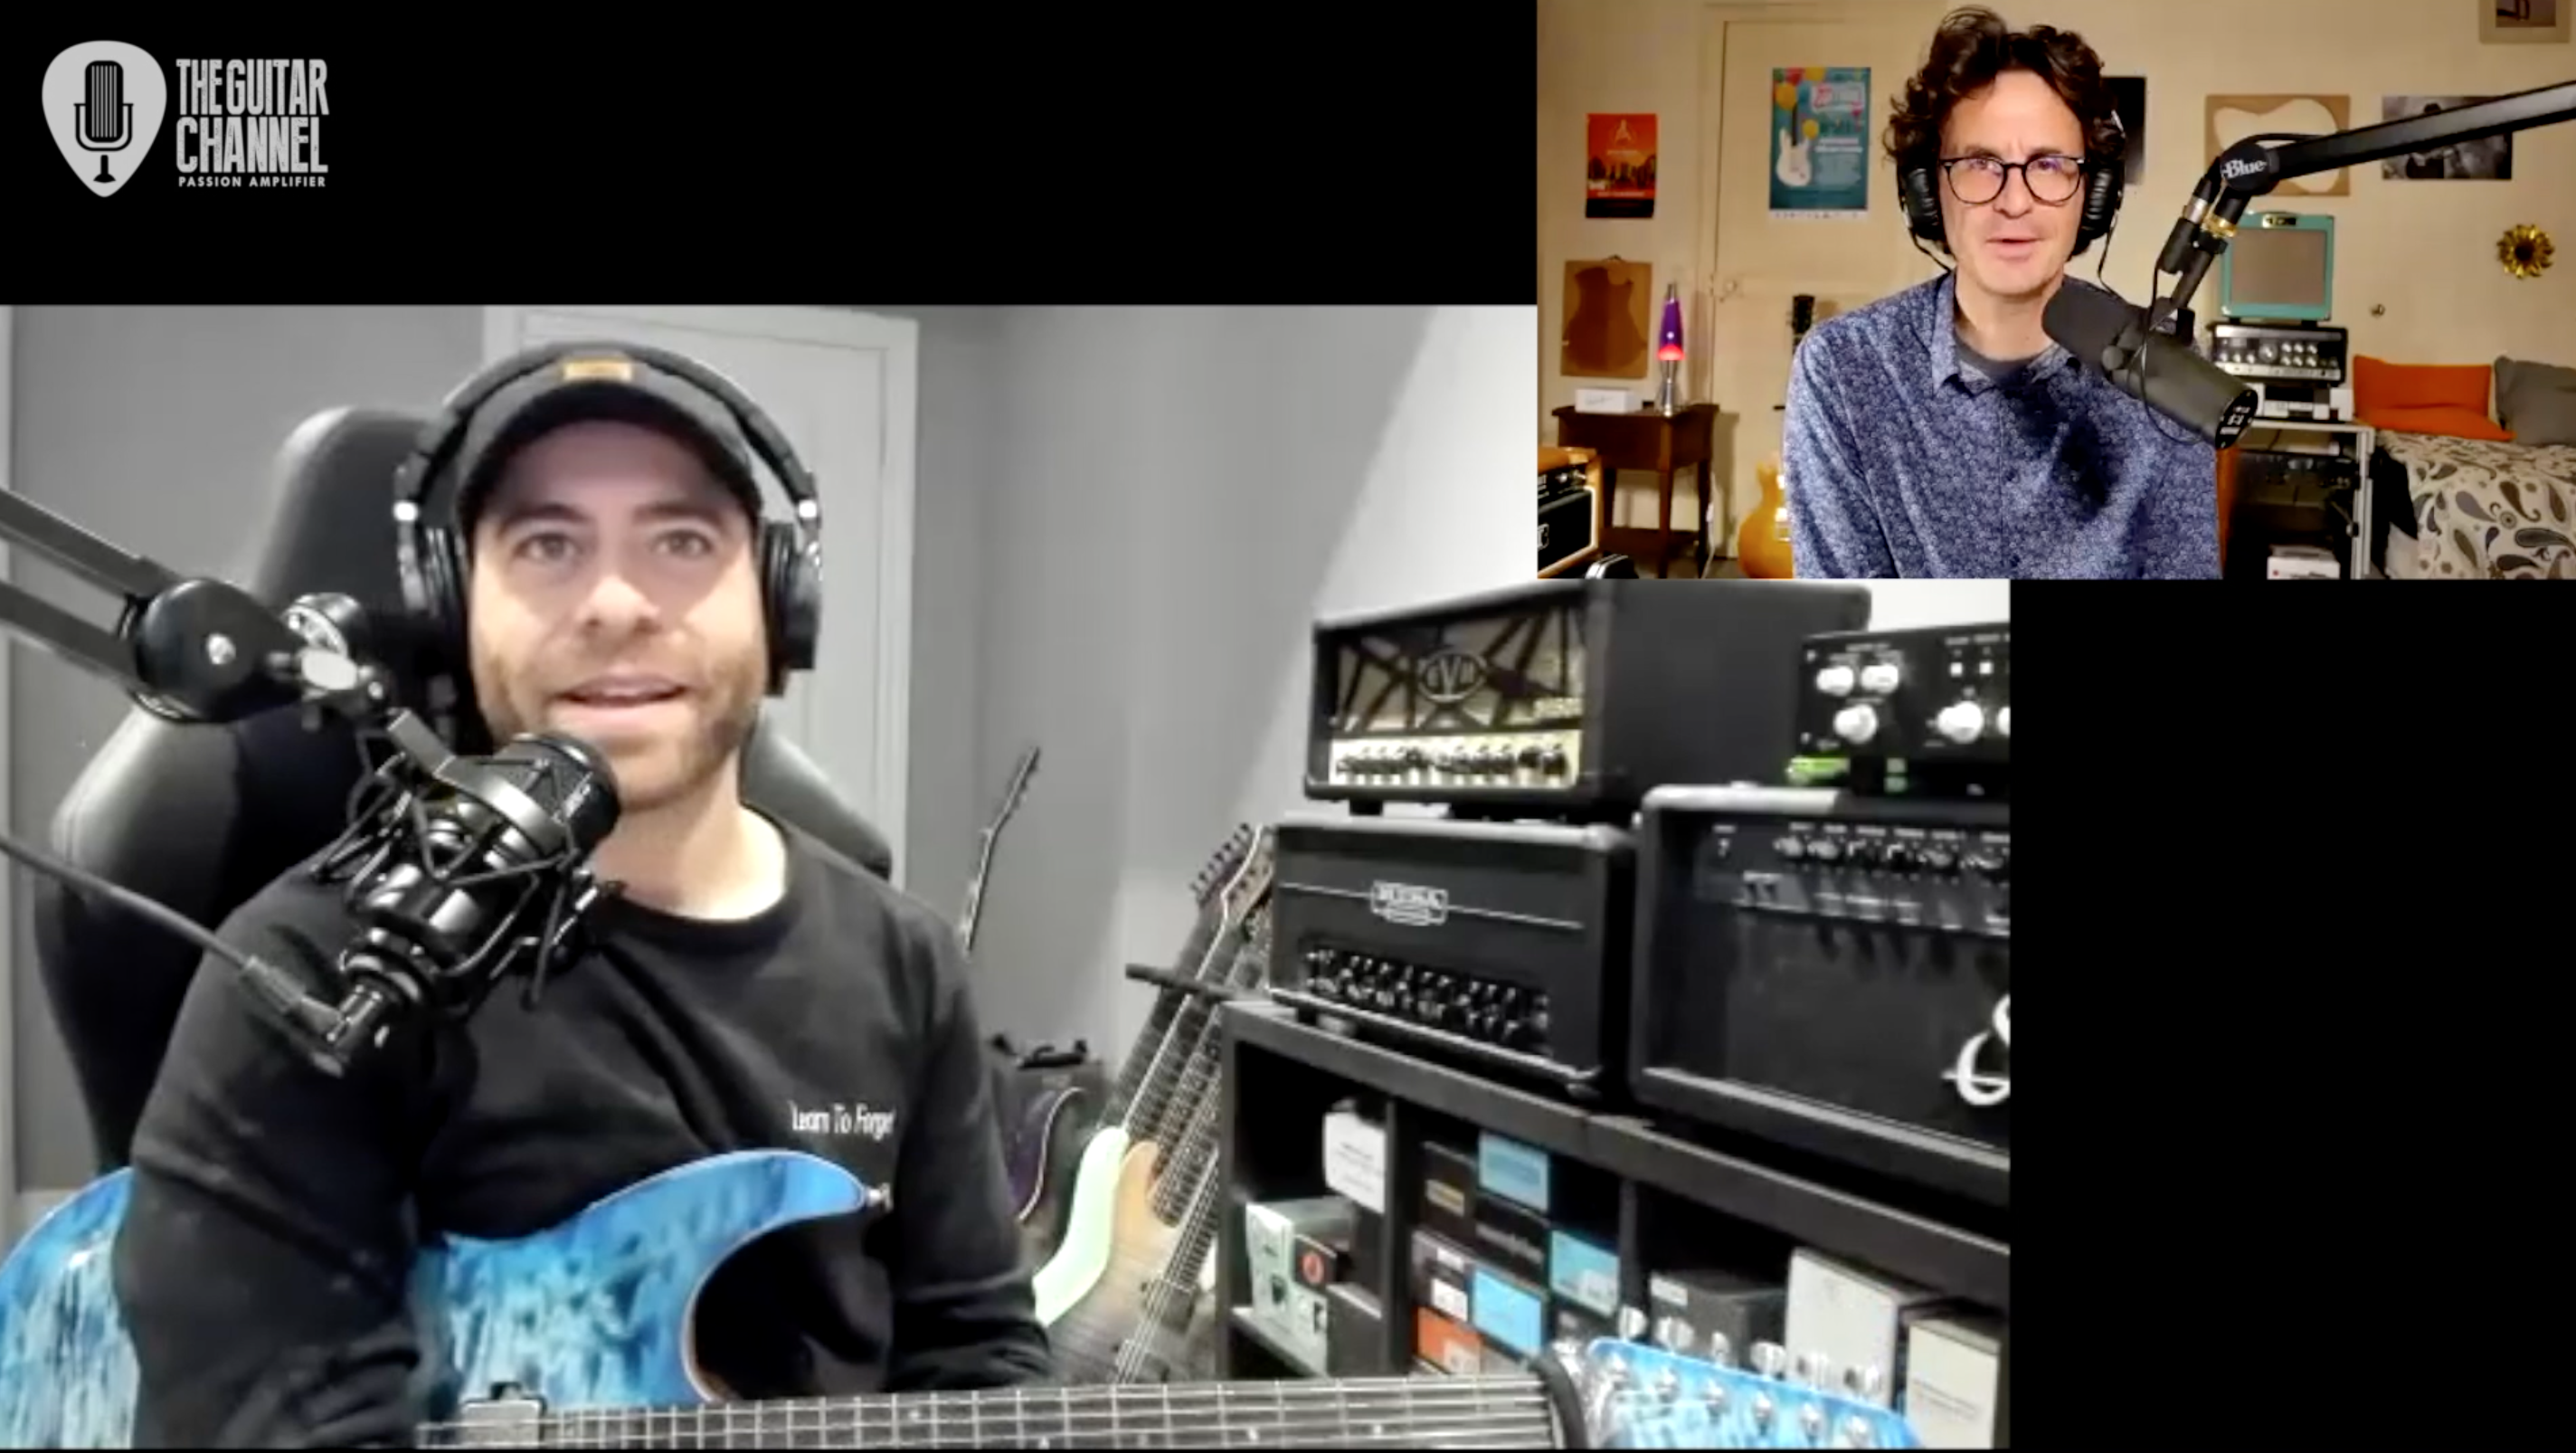 Aaron Marshall interview, guitar player for Intervals, great Metal Prog band from Canada